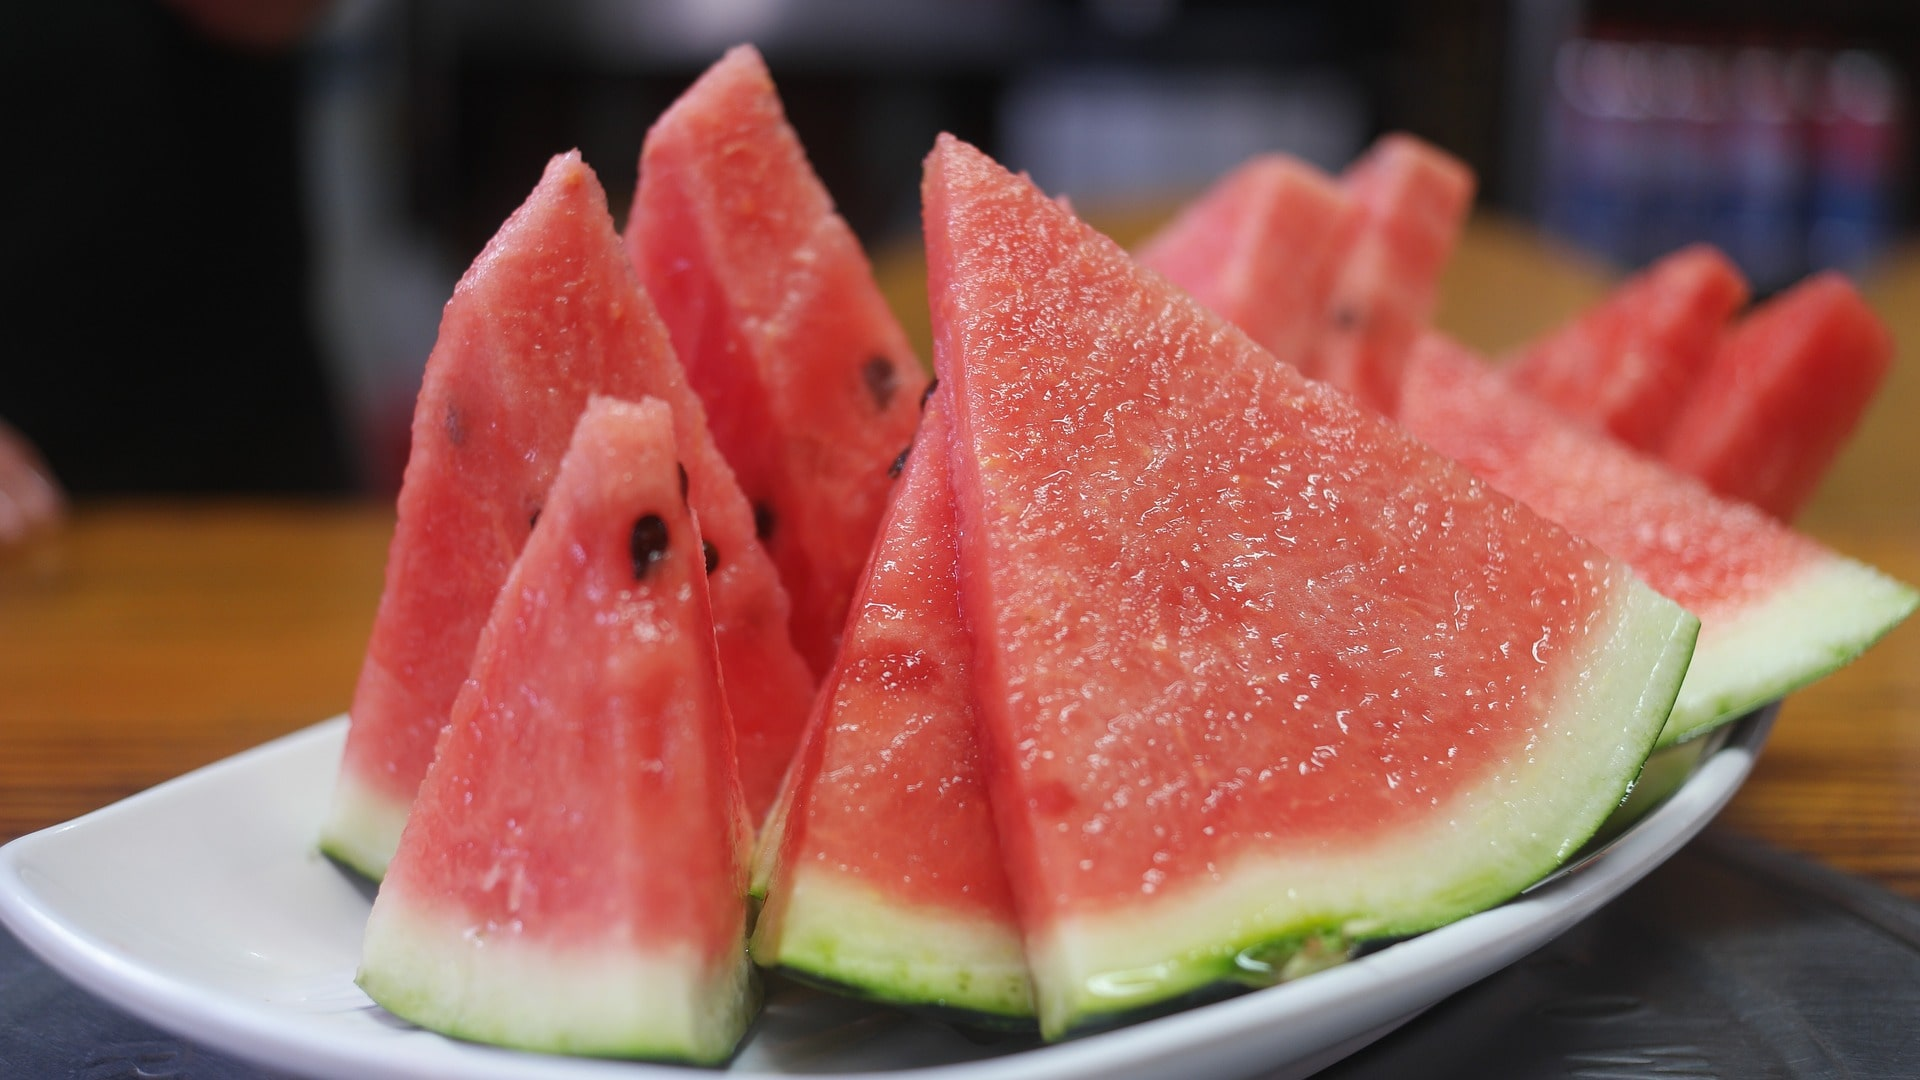 5 Side Effects Of Watermelon - Organic Health Fact